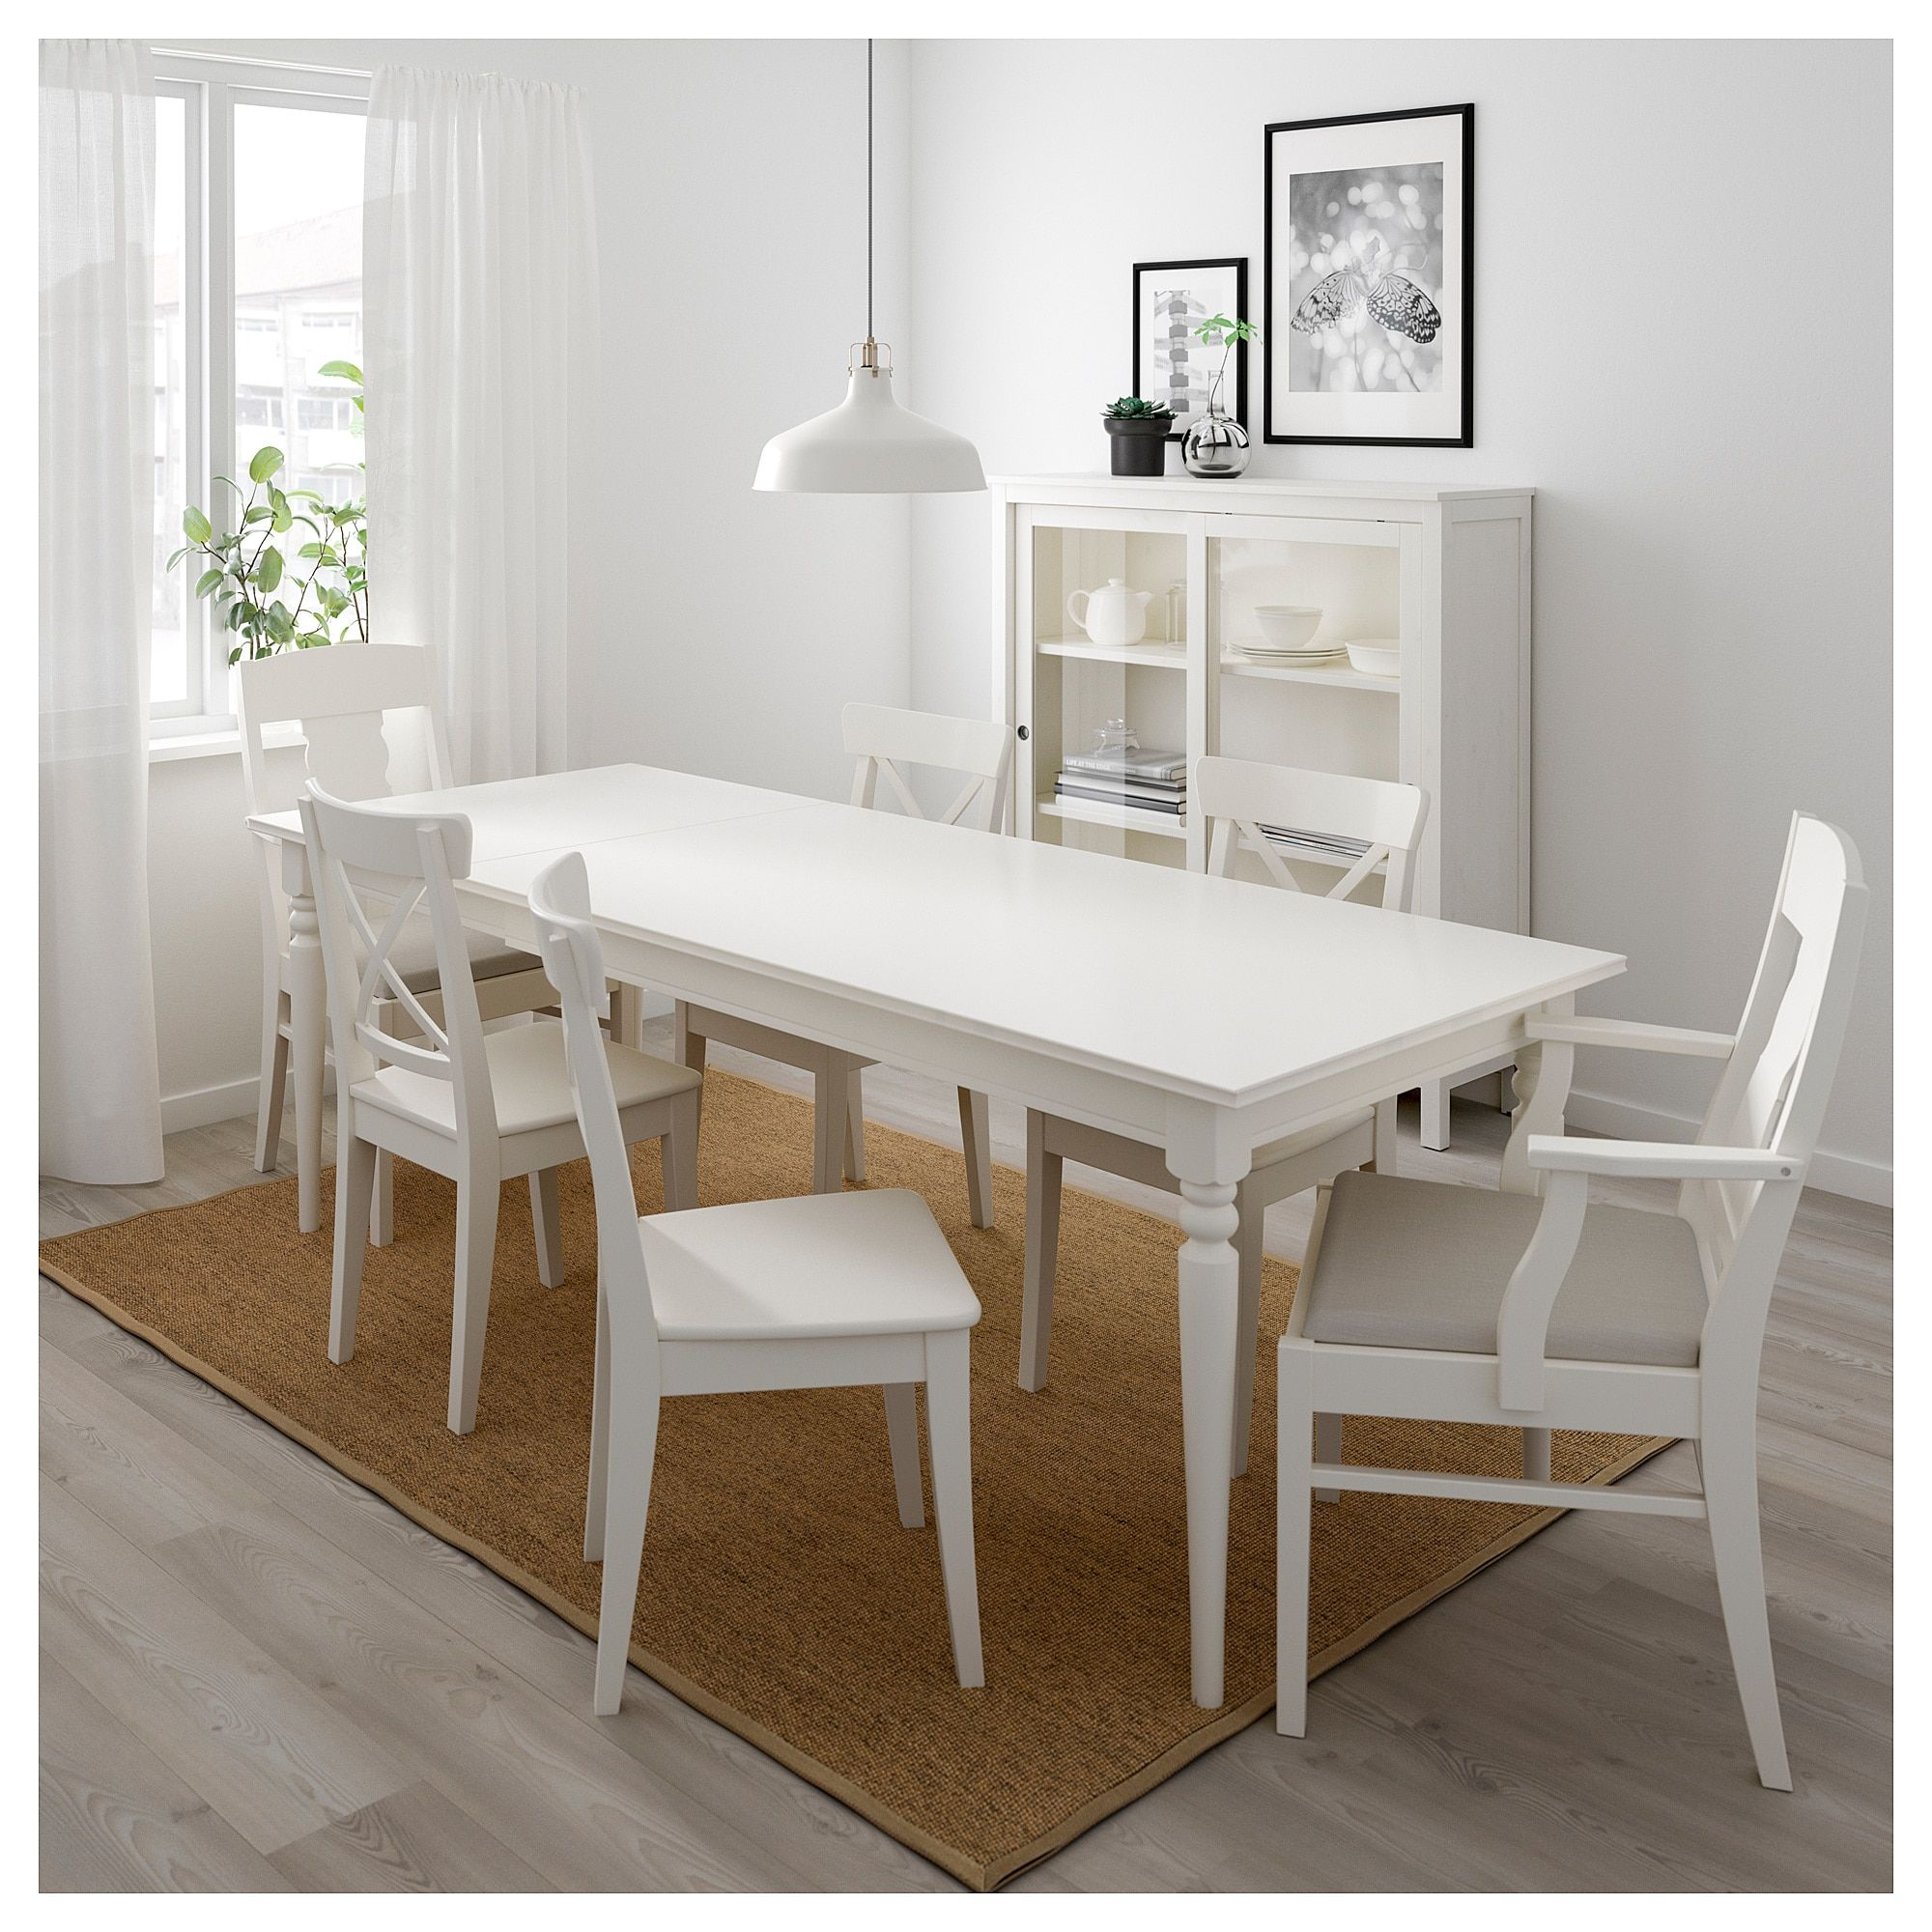 Ingatorp Ingolf Table And 6 Chairs White Nordvalla Beige In 2019